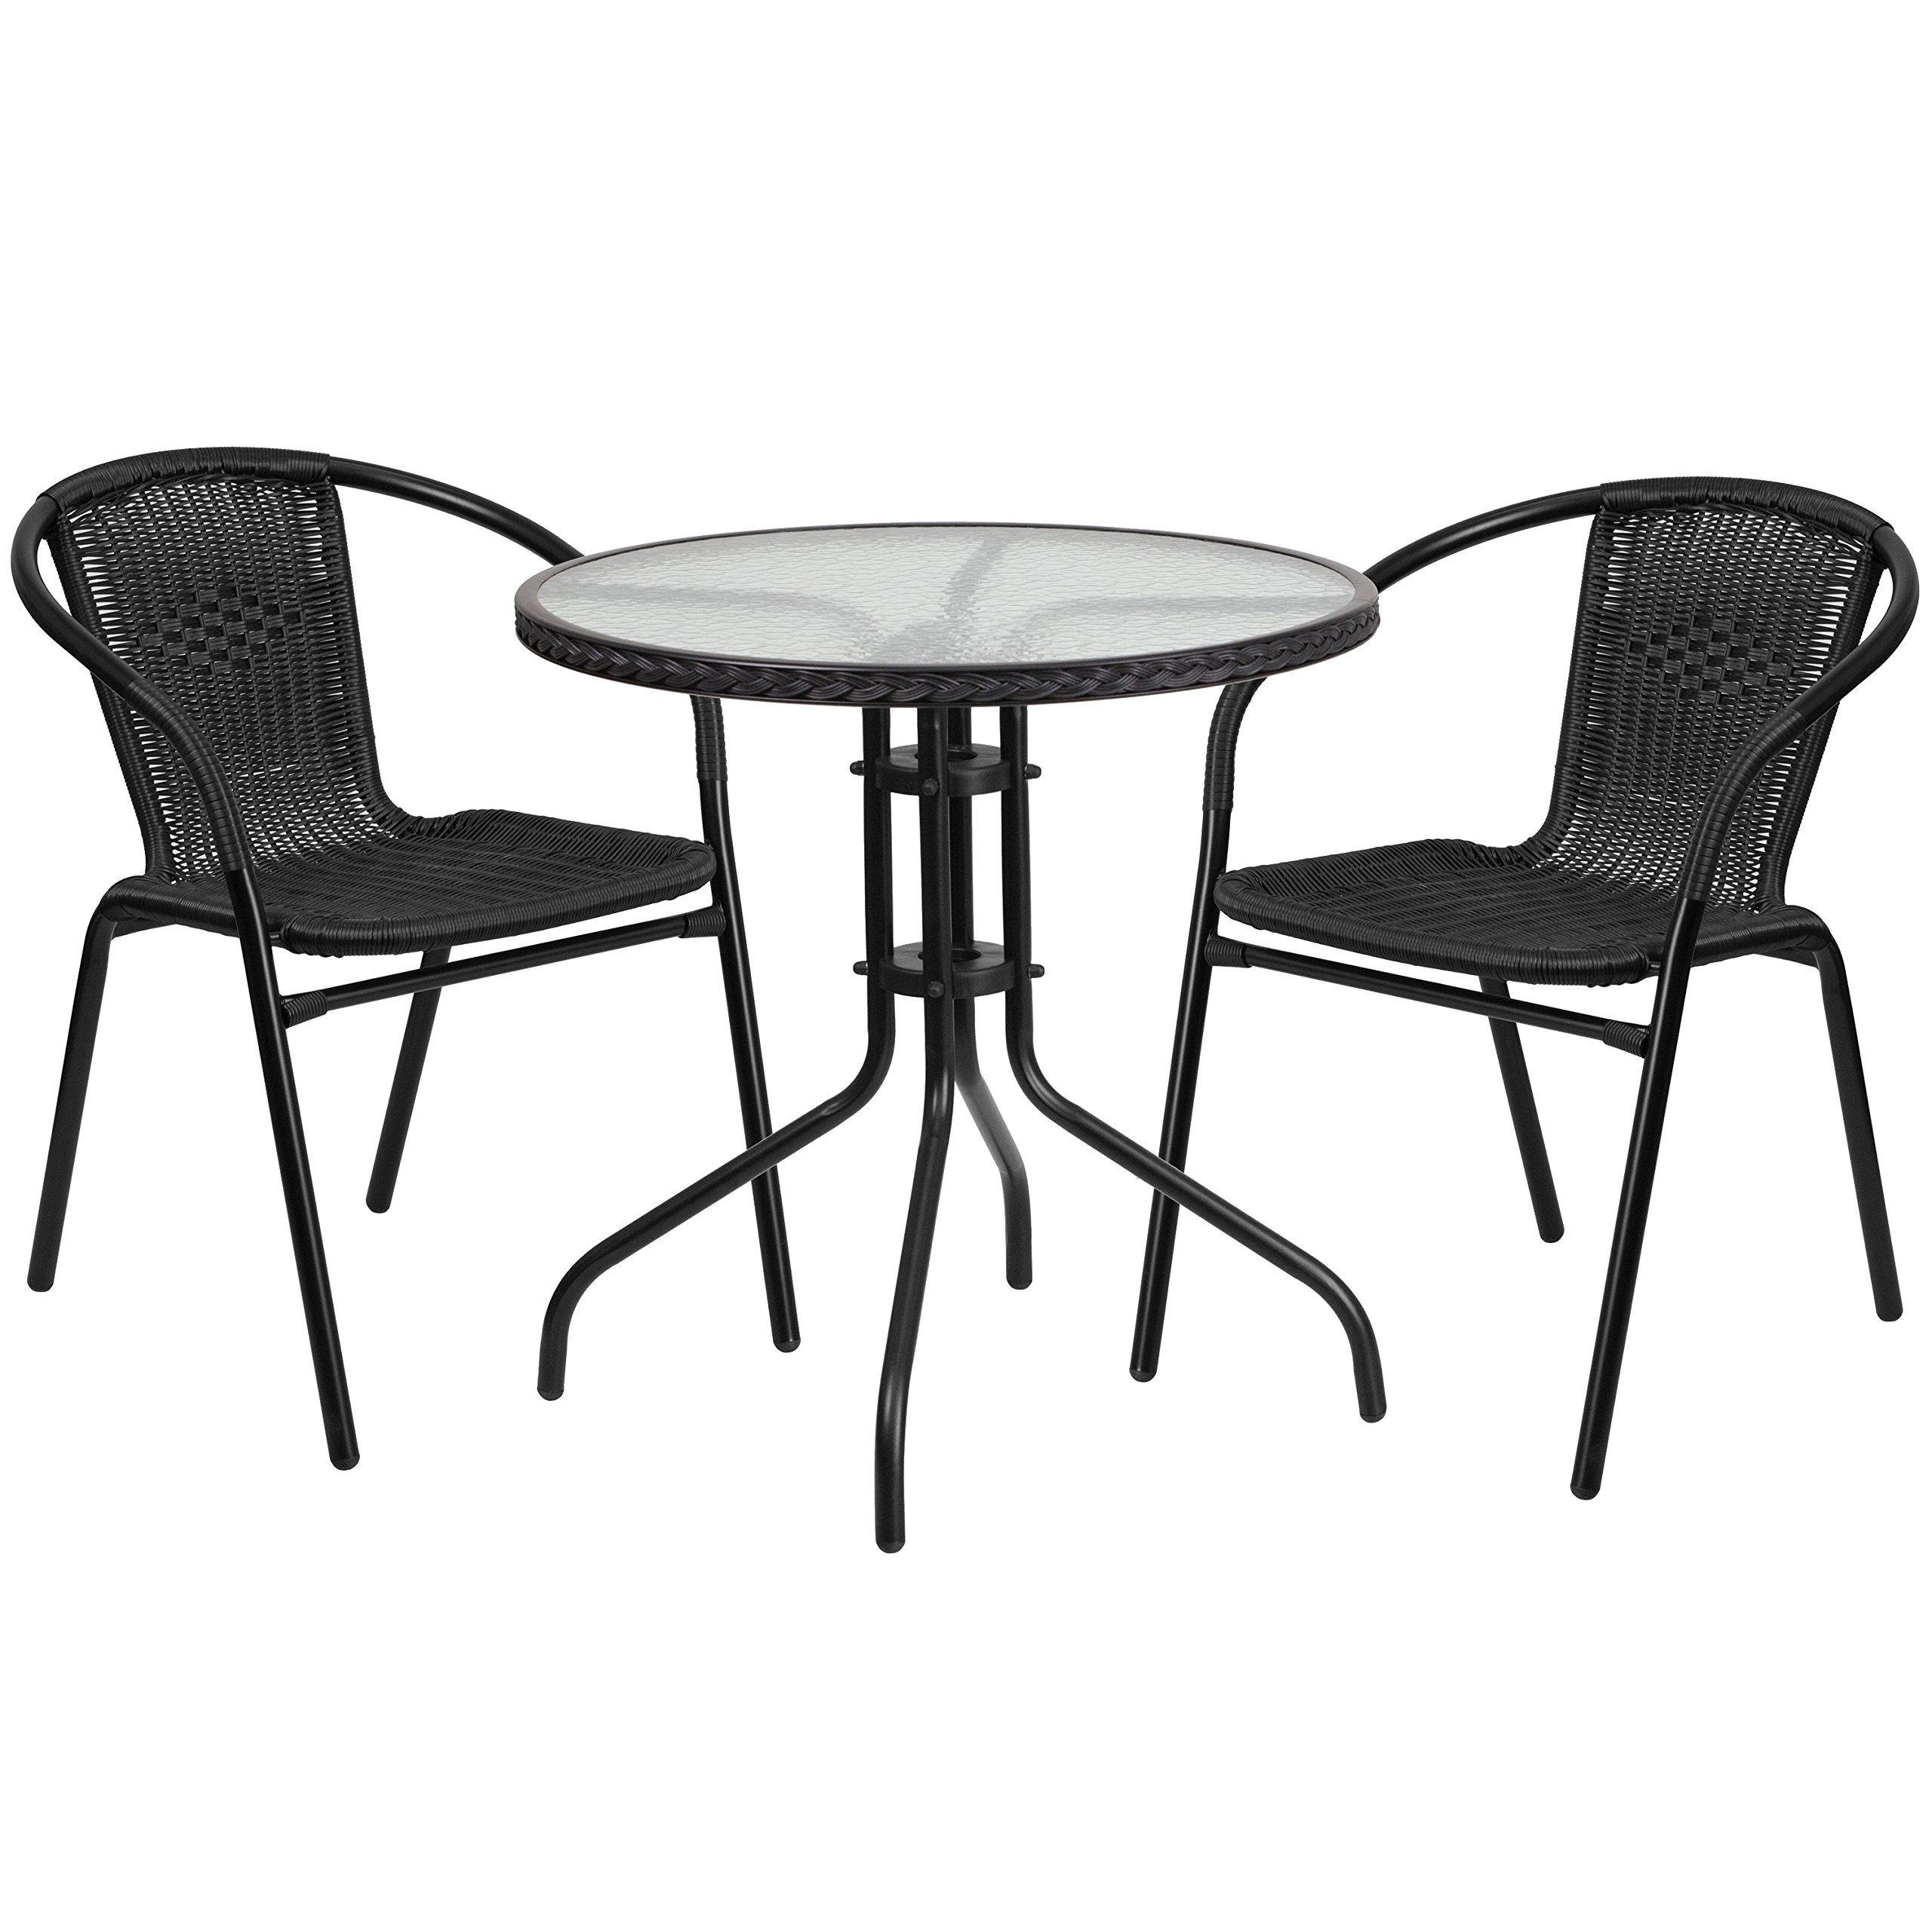 Flash Furniture TLH-087RD-037BK2-GG Tlh-087Rd-037Bk2-Gg Round Glass Metal Table With  Rattan Edging And 2  Rattan Stack Chairs, 28'', Black